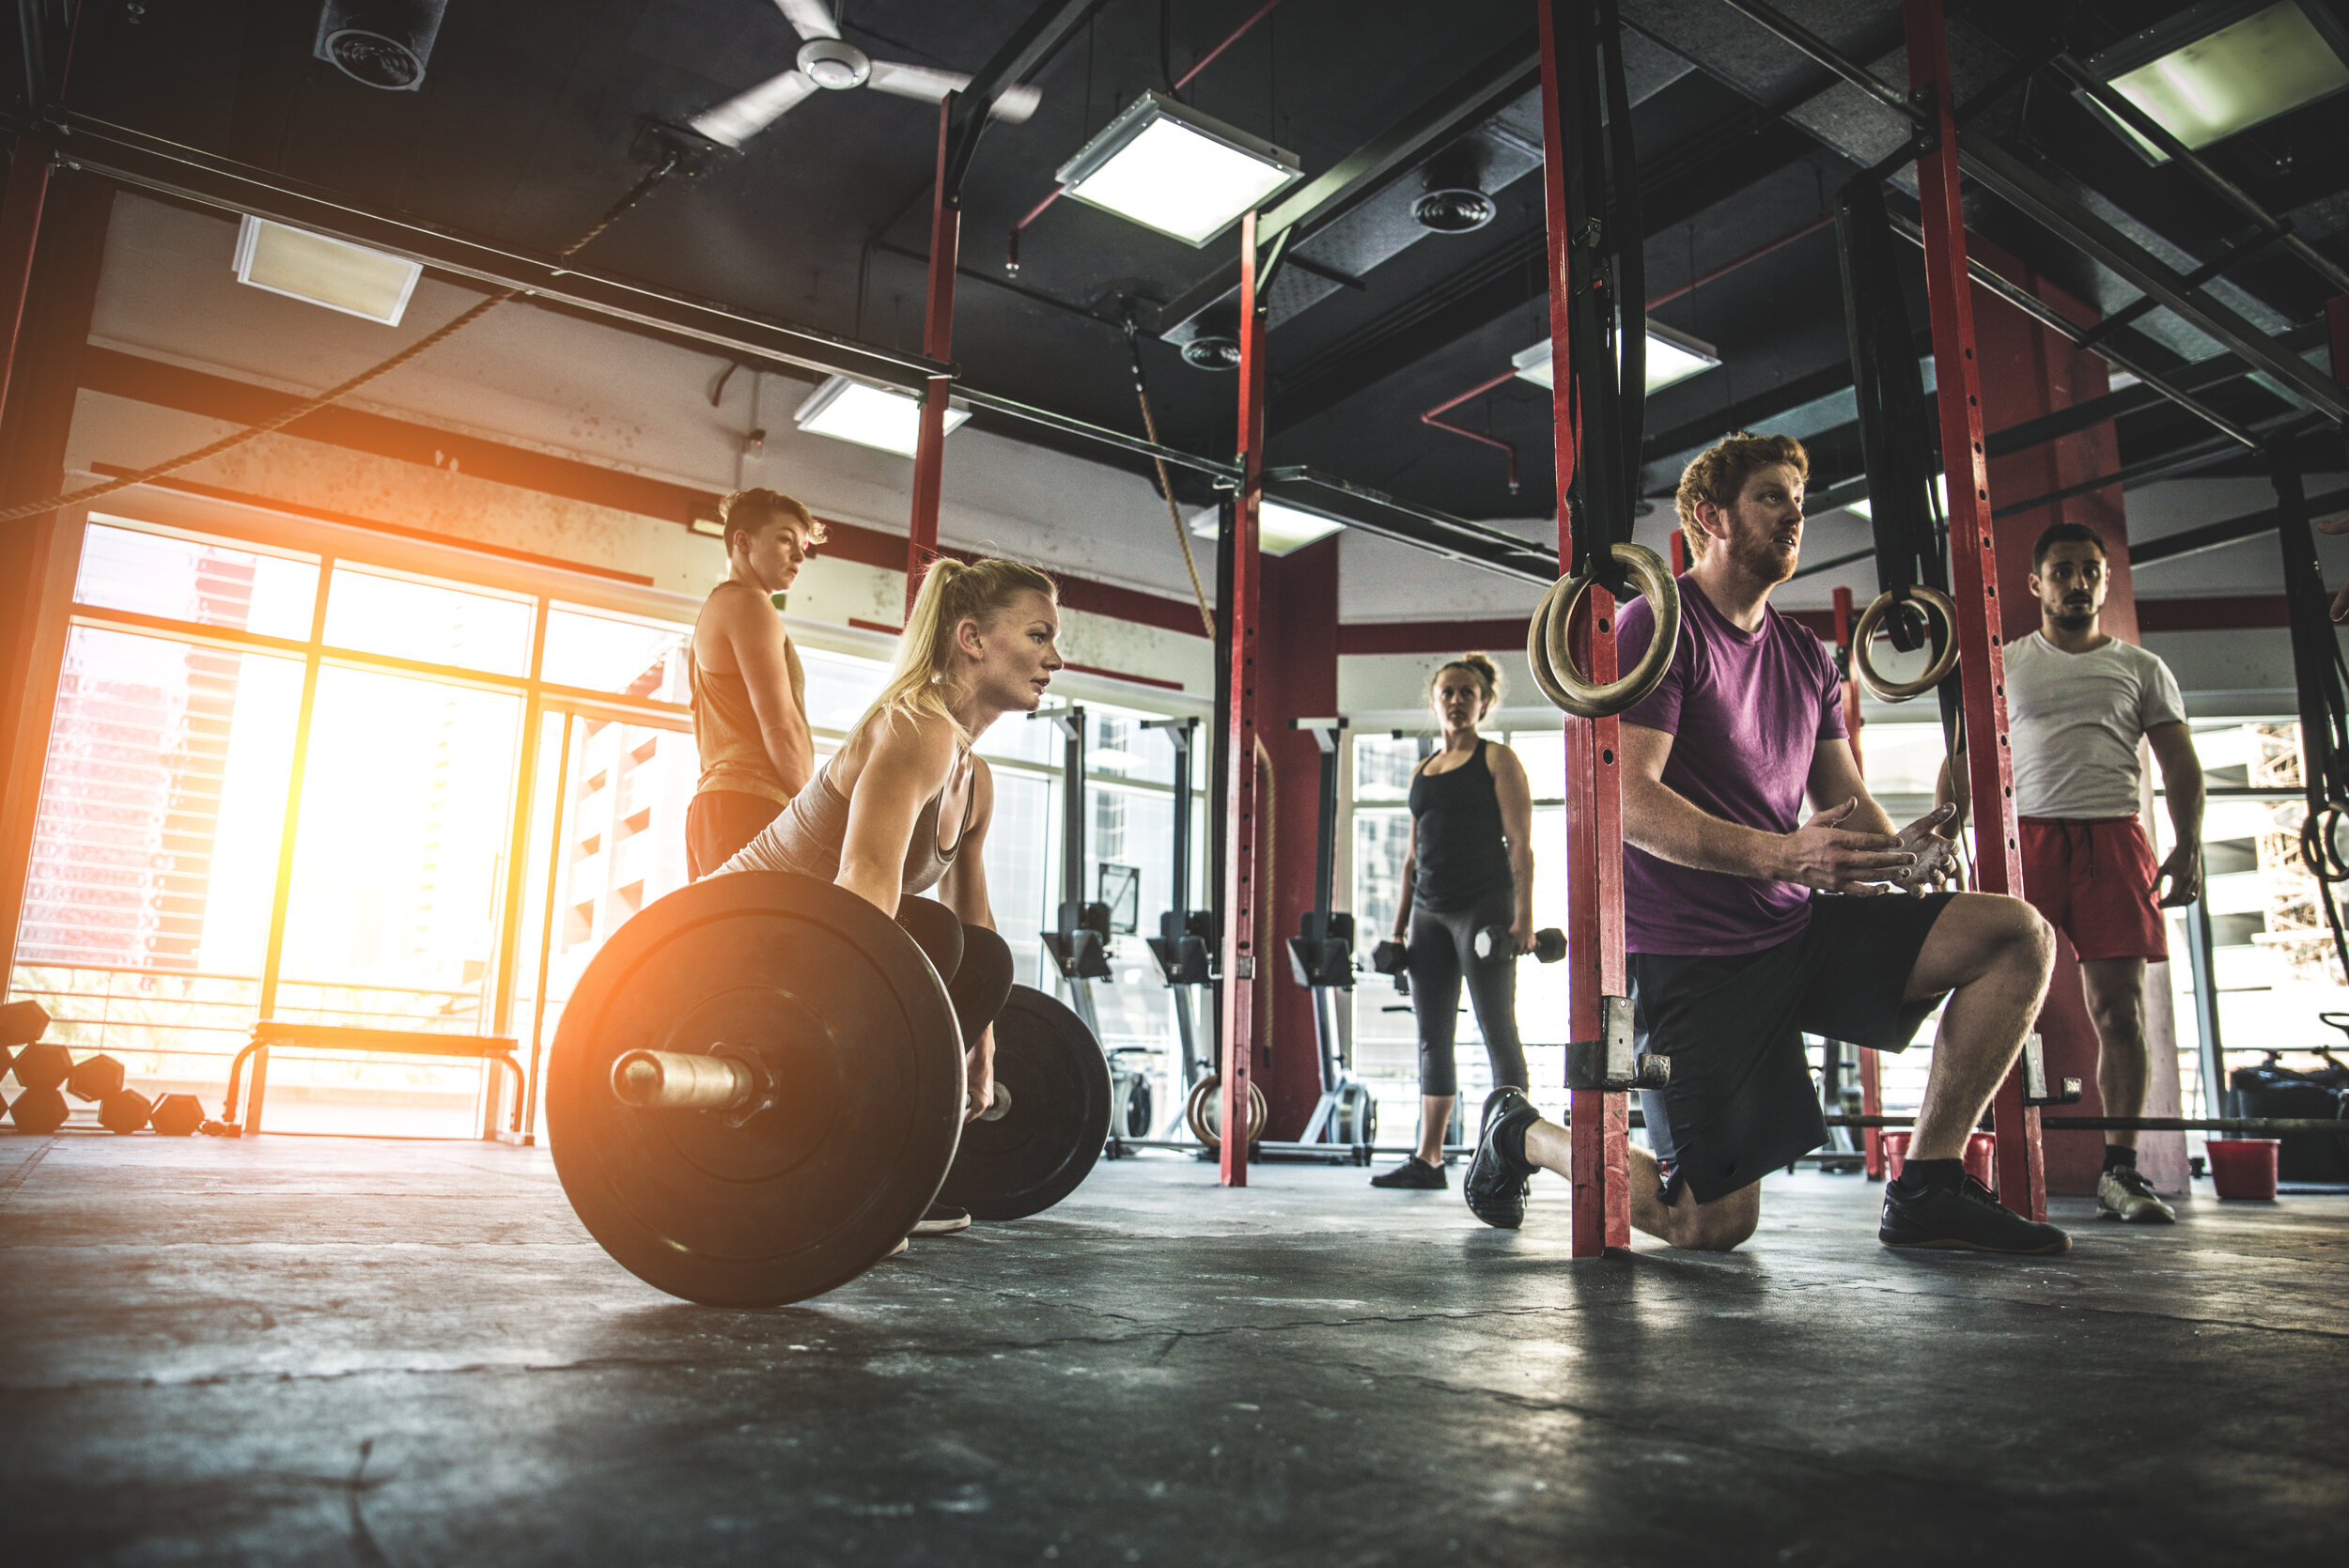 Canva - Athletes Training in a Cross-Fit Gym.jpg